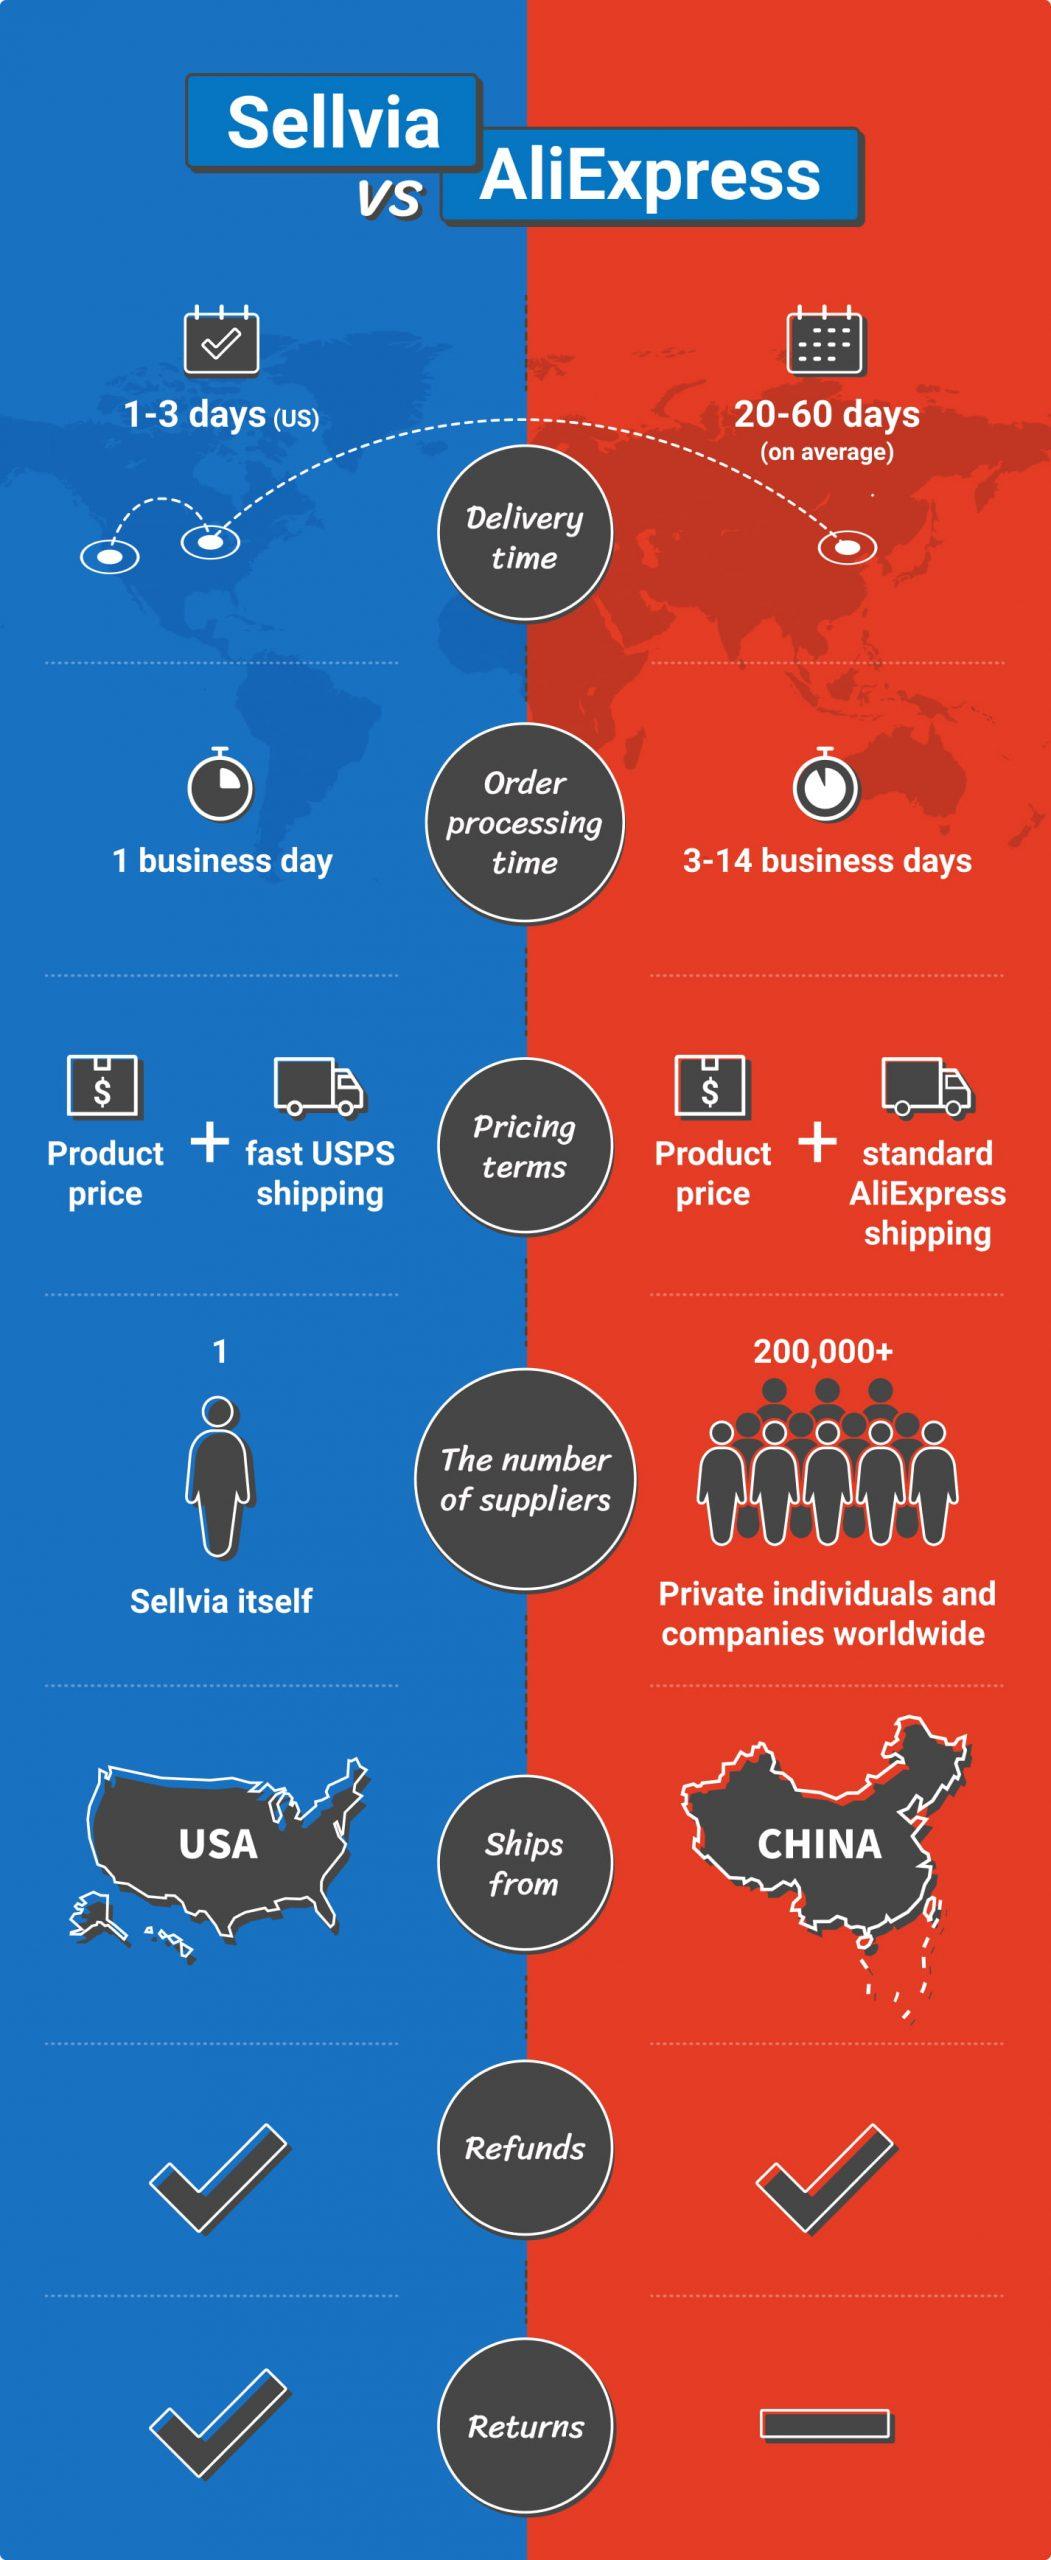 Comparing AliExpress vs Sellvia as dropshipping suppliers